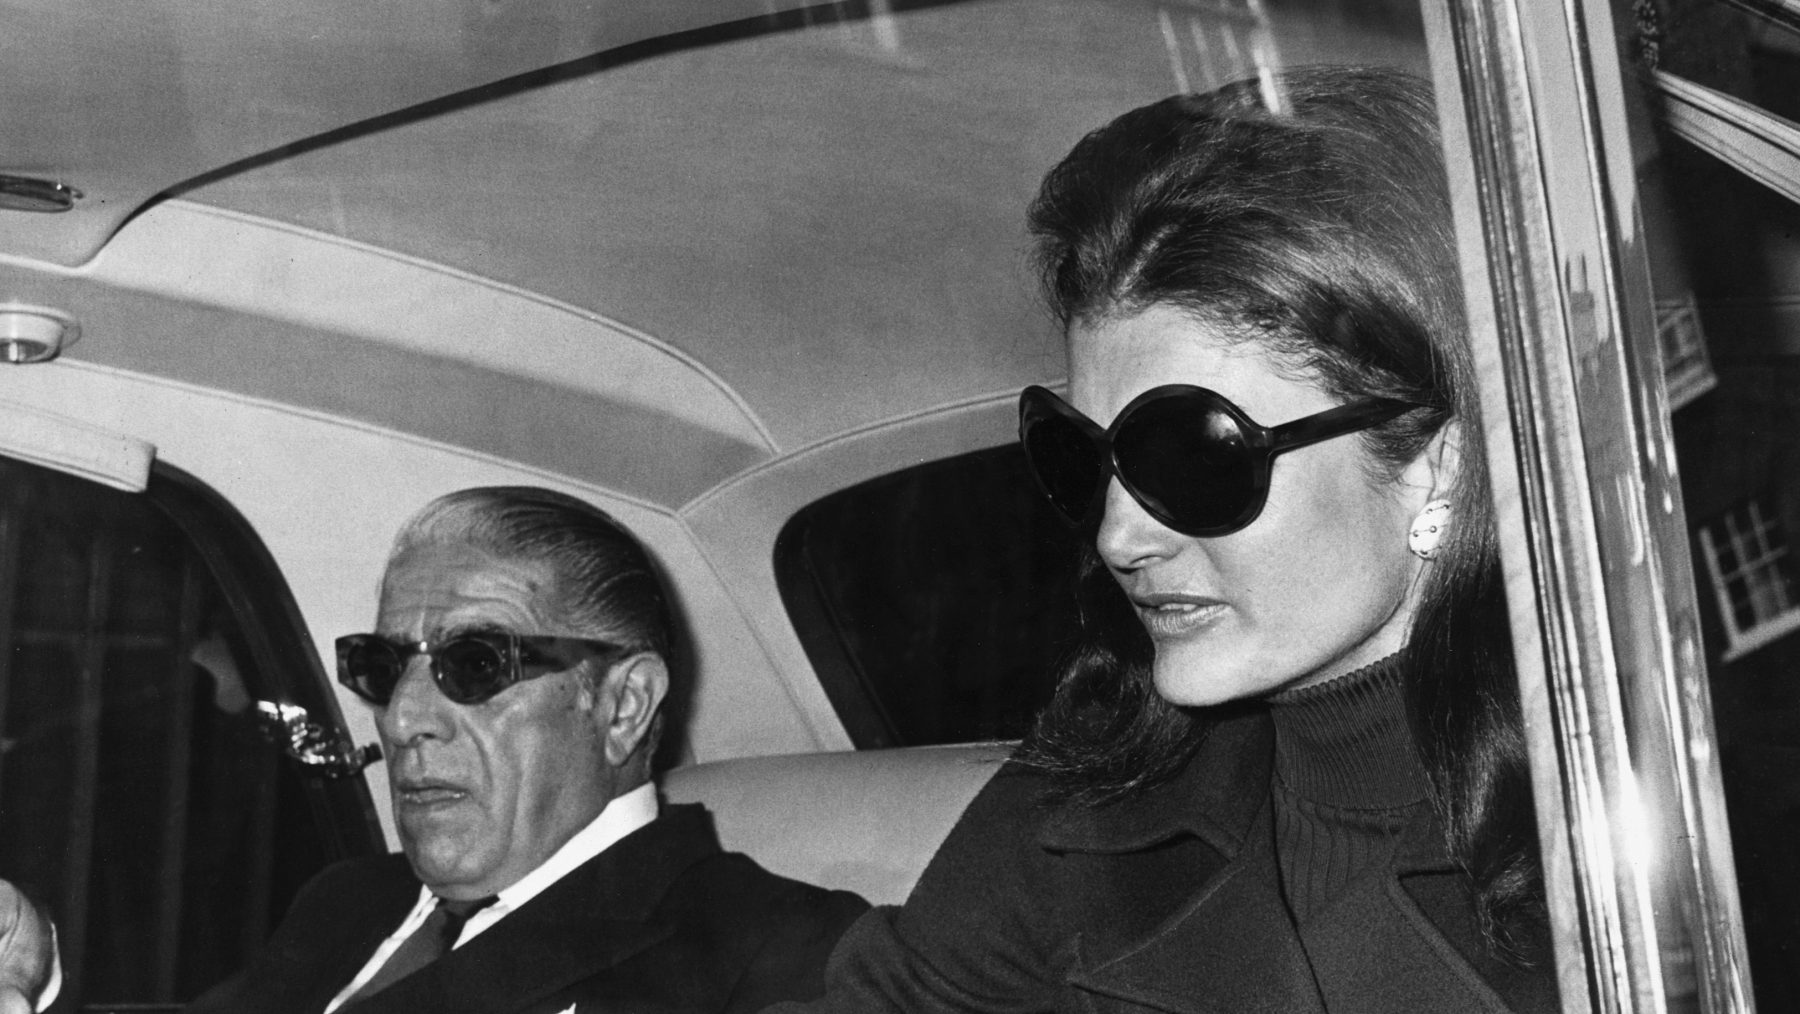 01a2369599 Aristotle Onassis with his wife Jacqueline Kennedy Onassis, just before  flying from London to Belfast